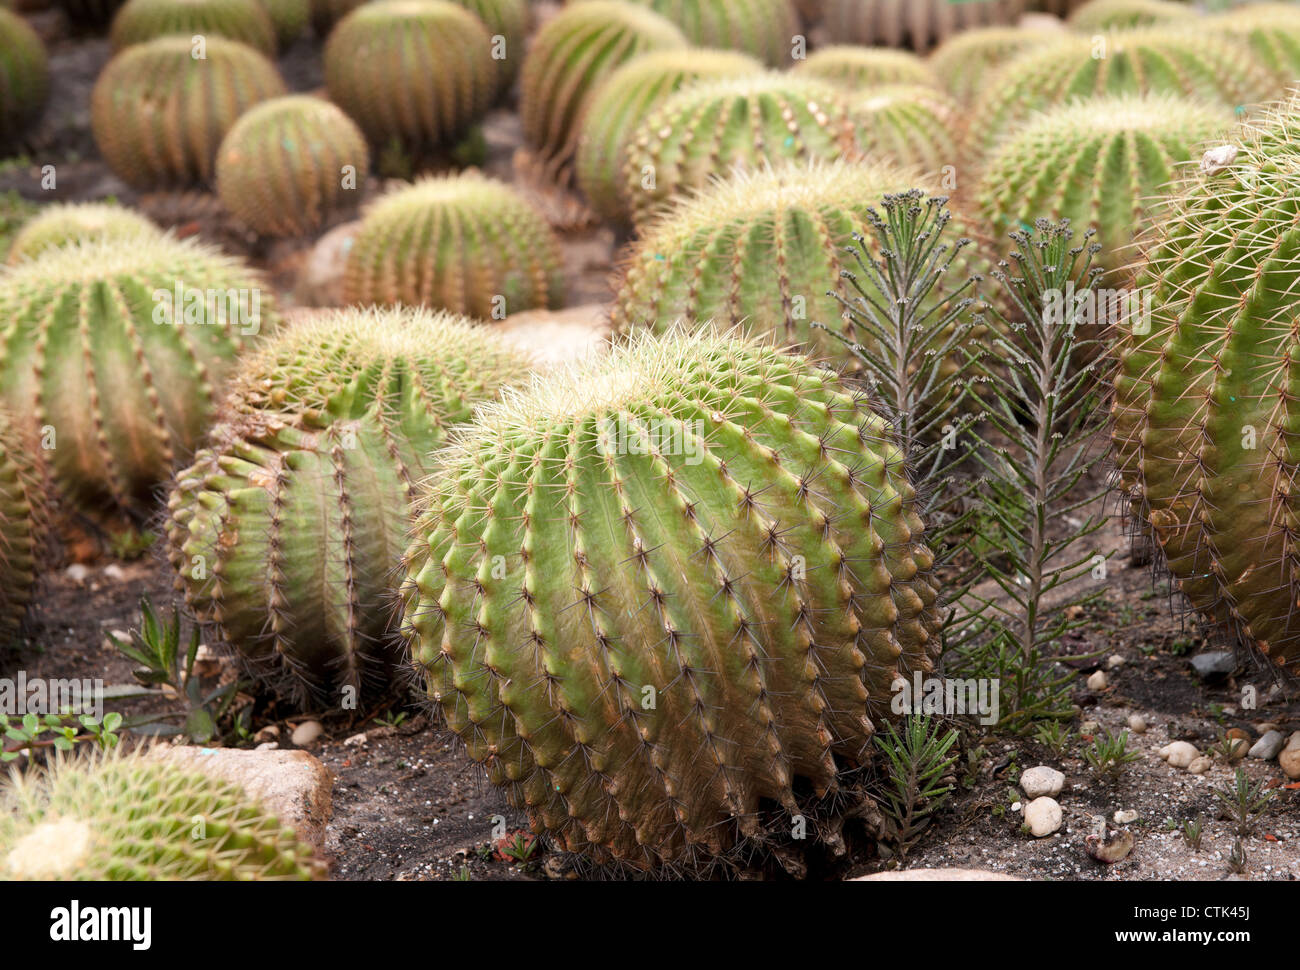 great image of some prickly cacti cactus plants - Stock Image